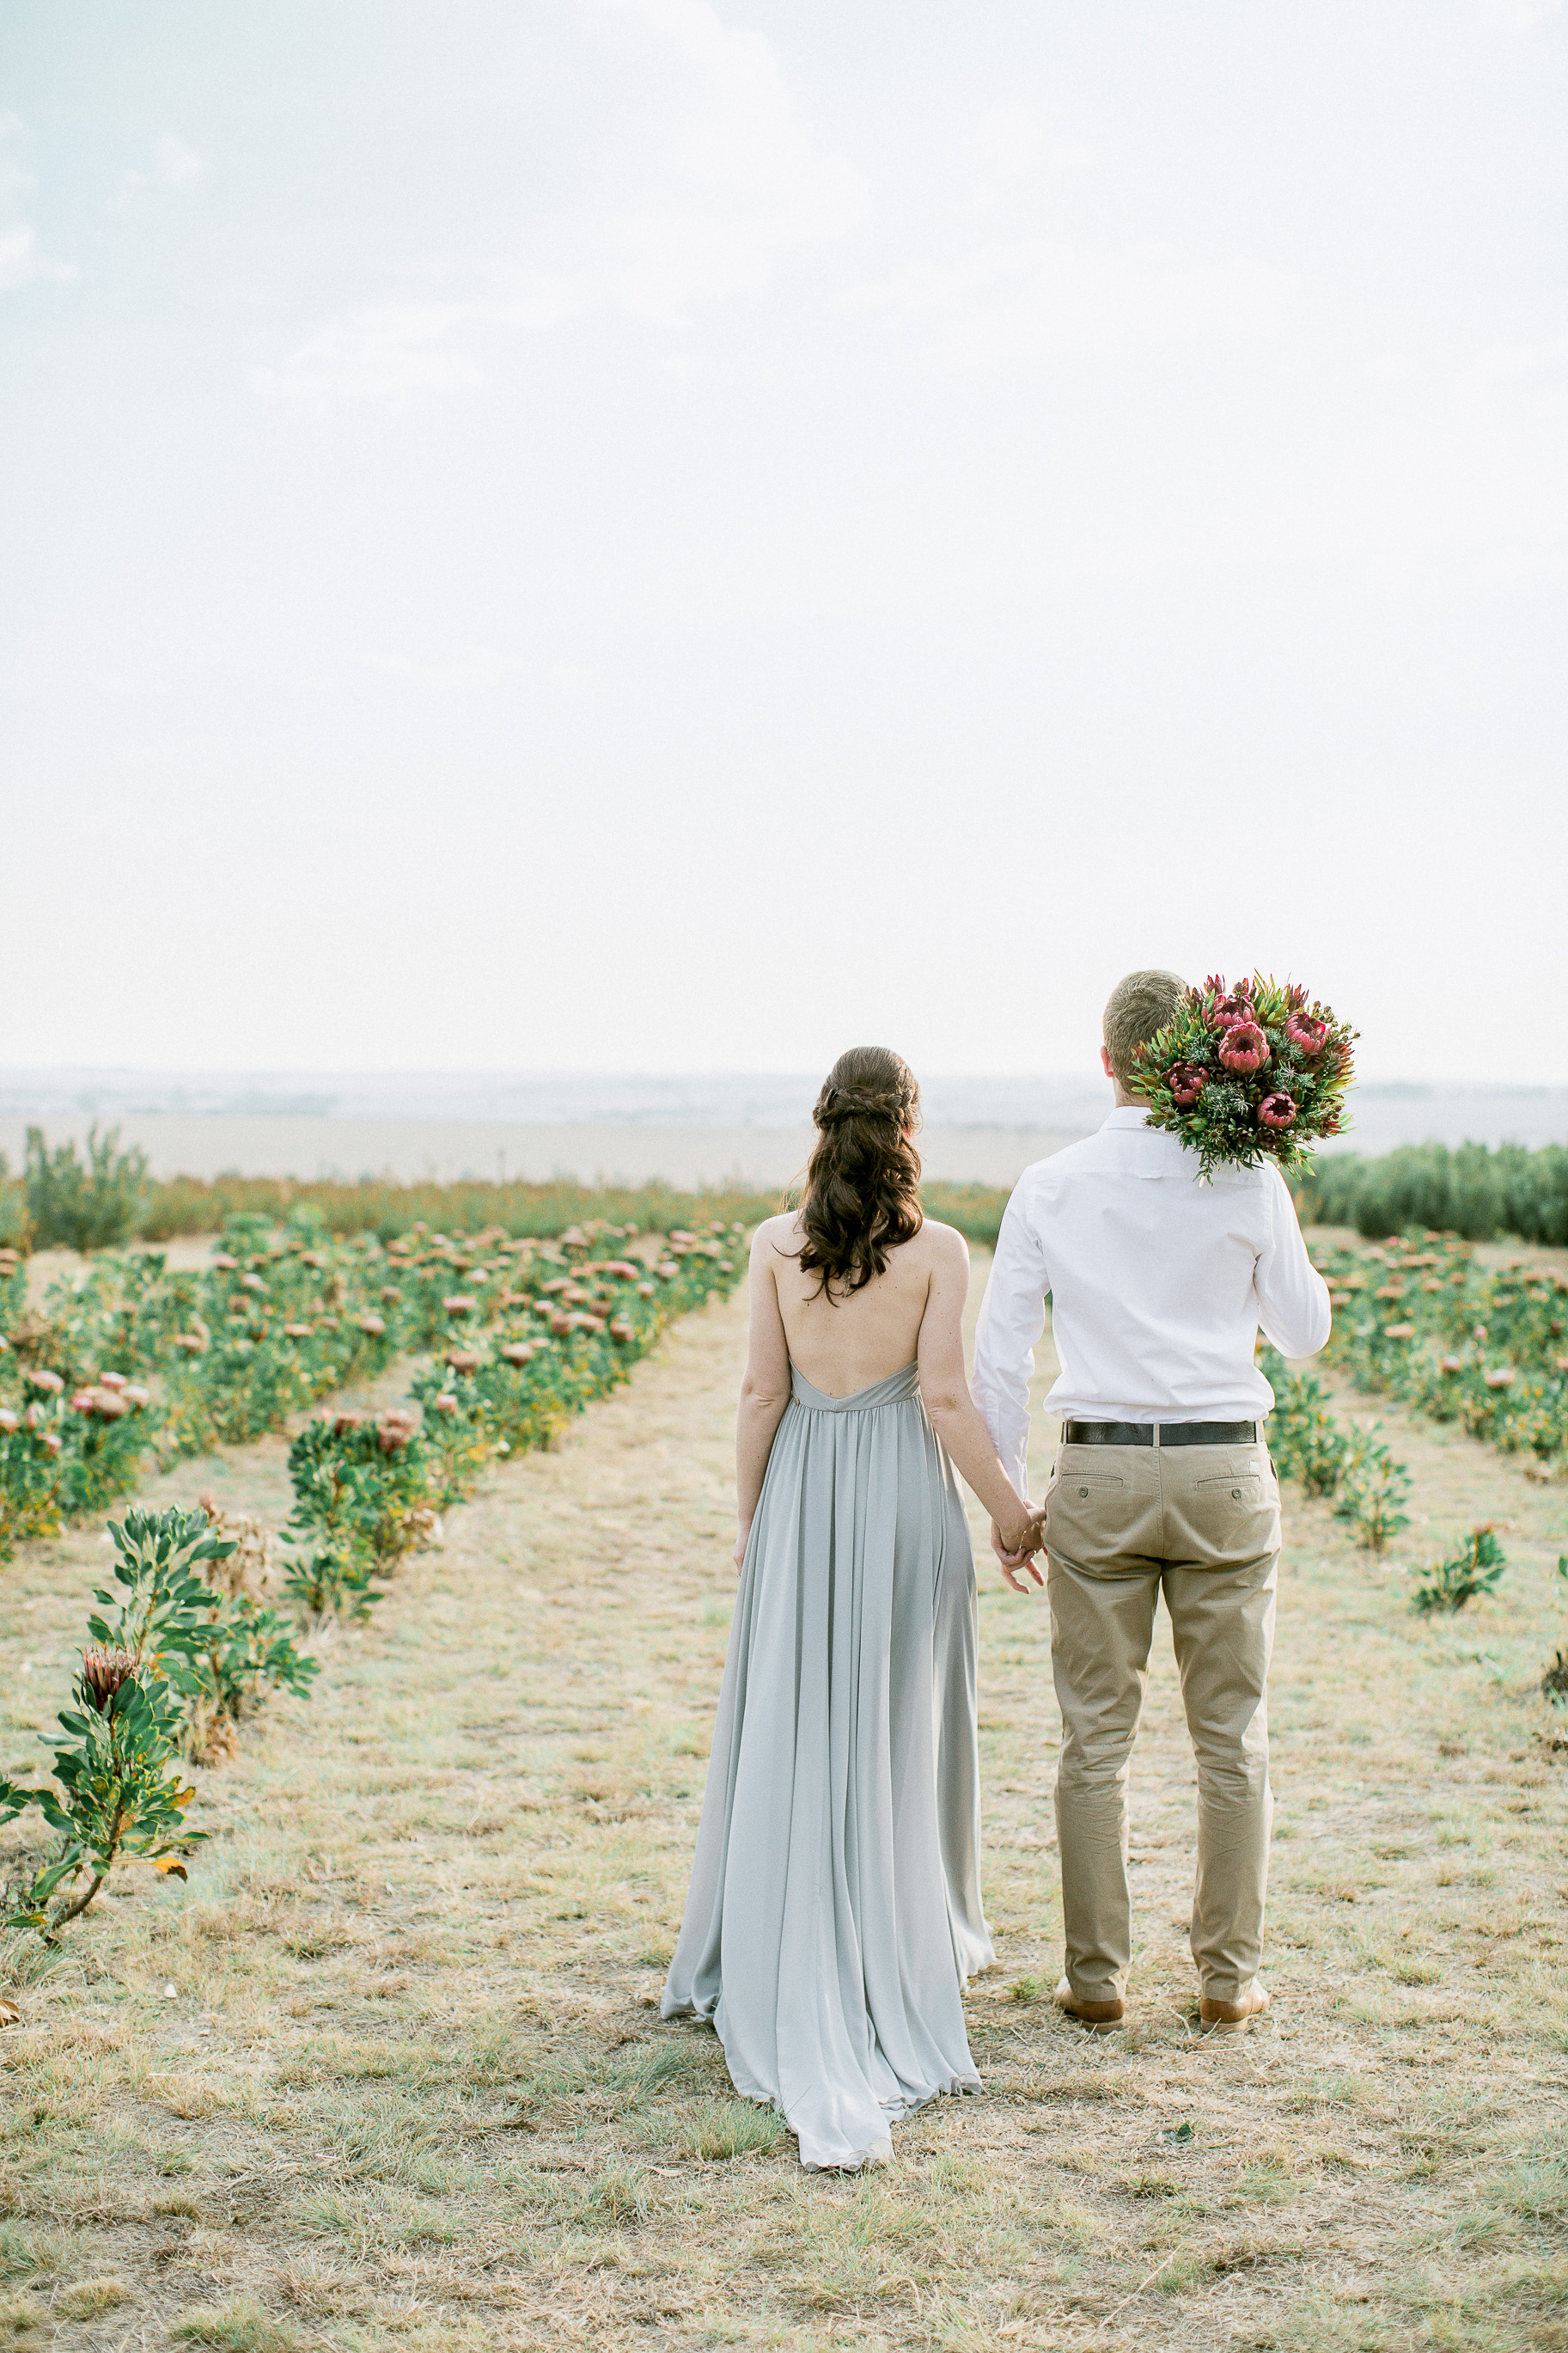 South africa wedding photographer clareece smit photography61.jpg